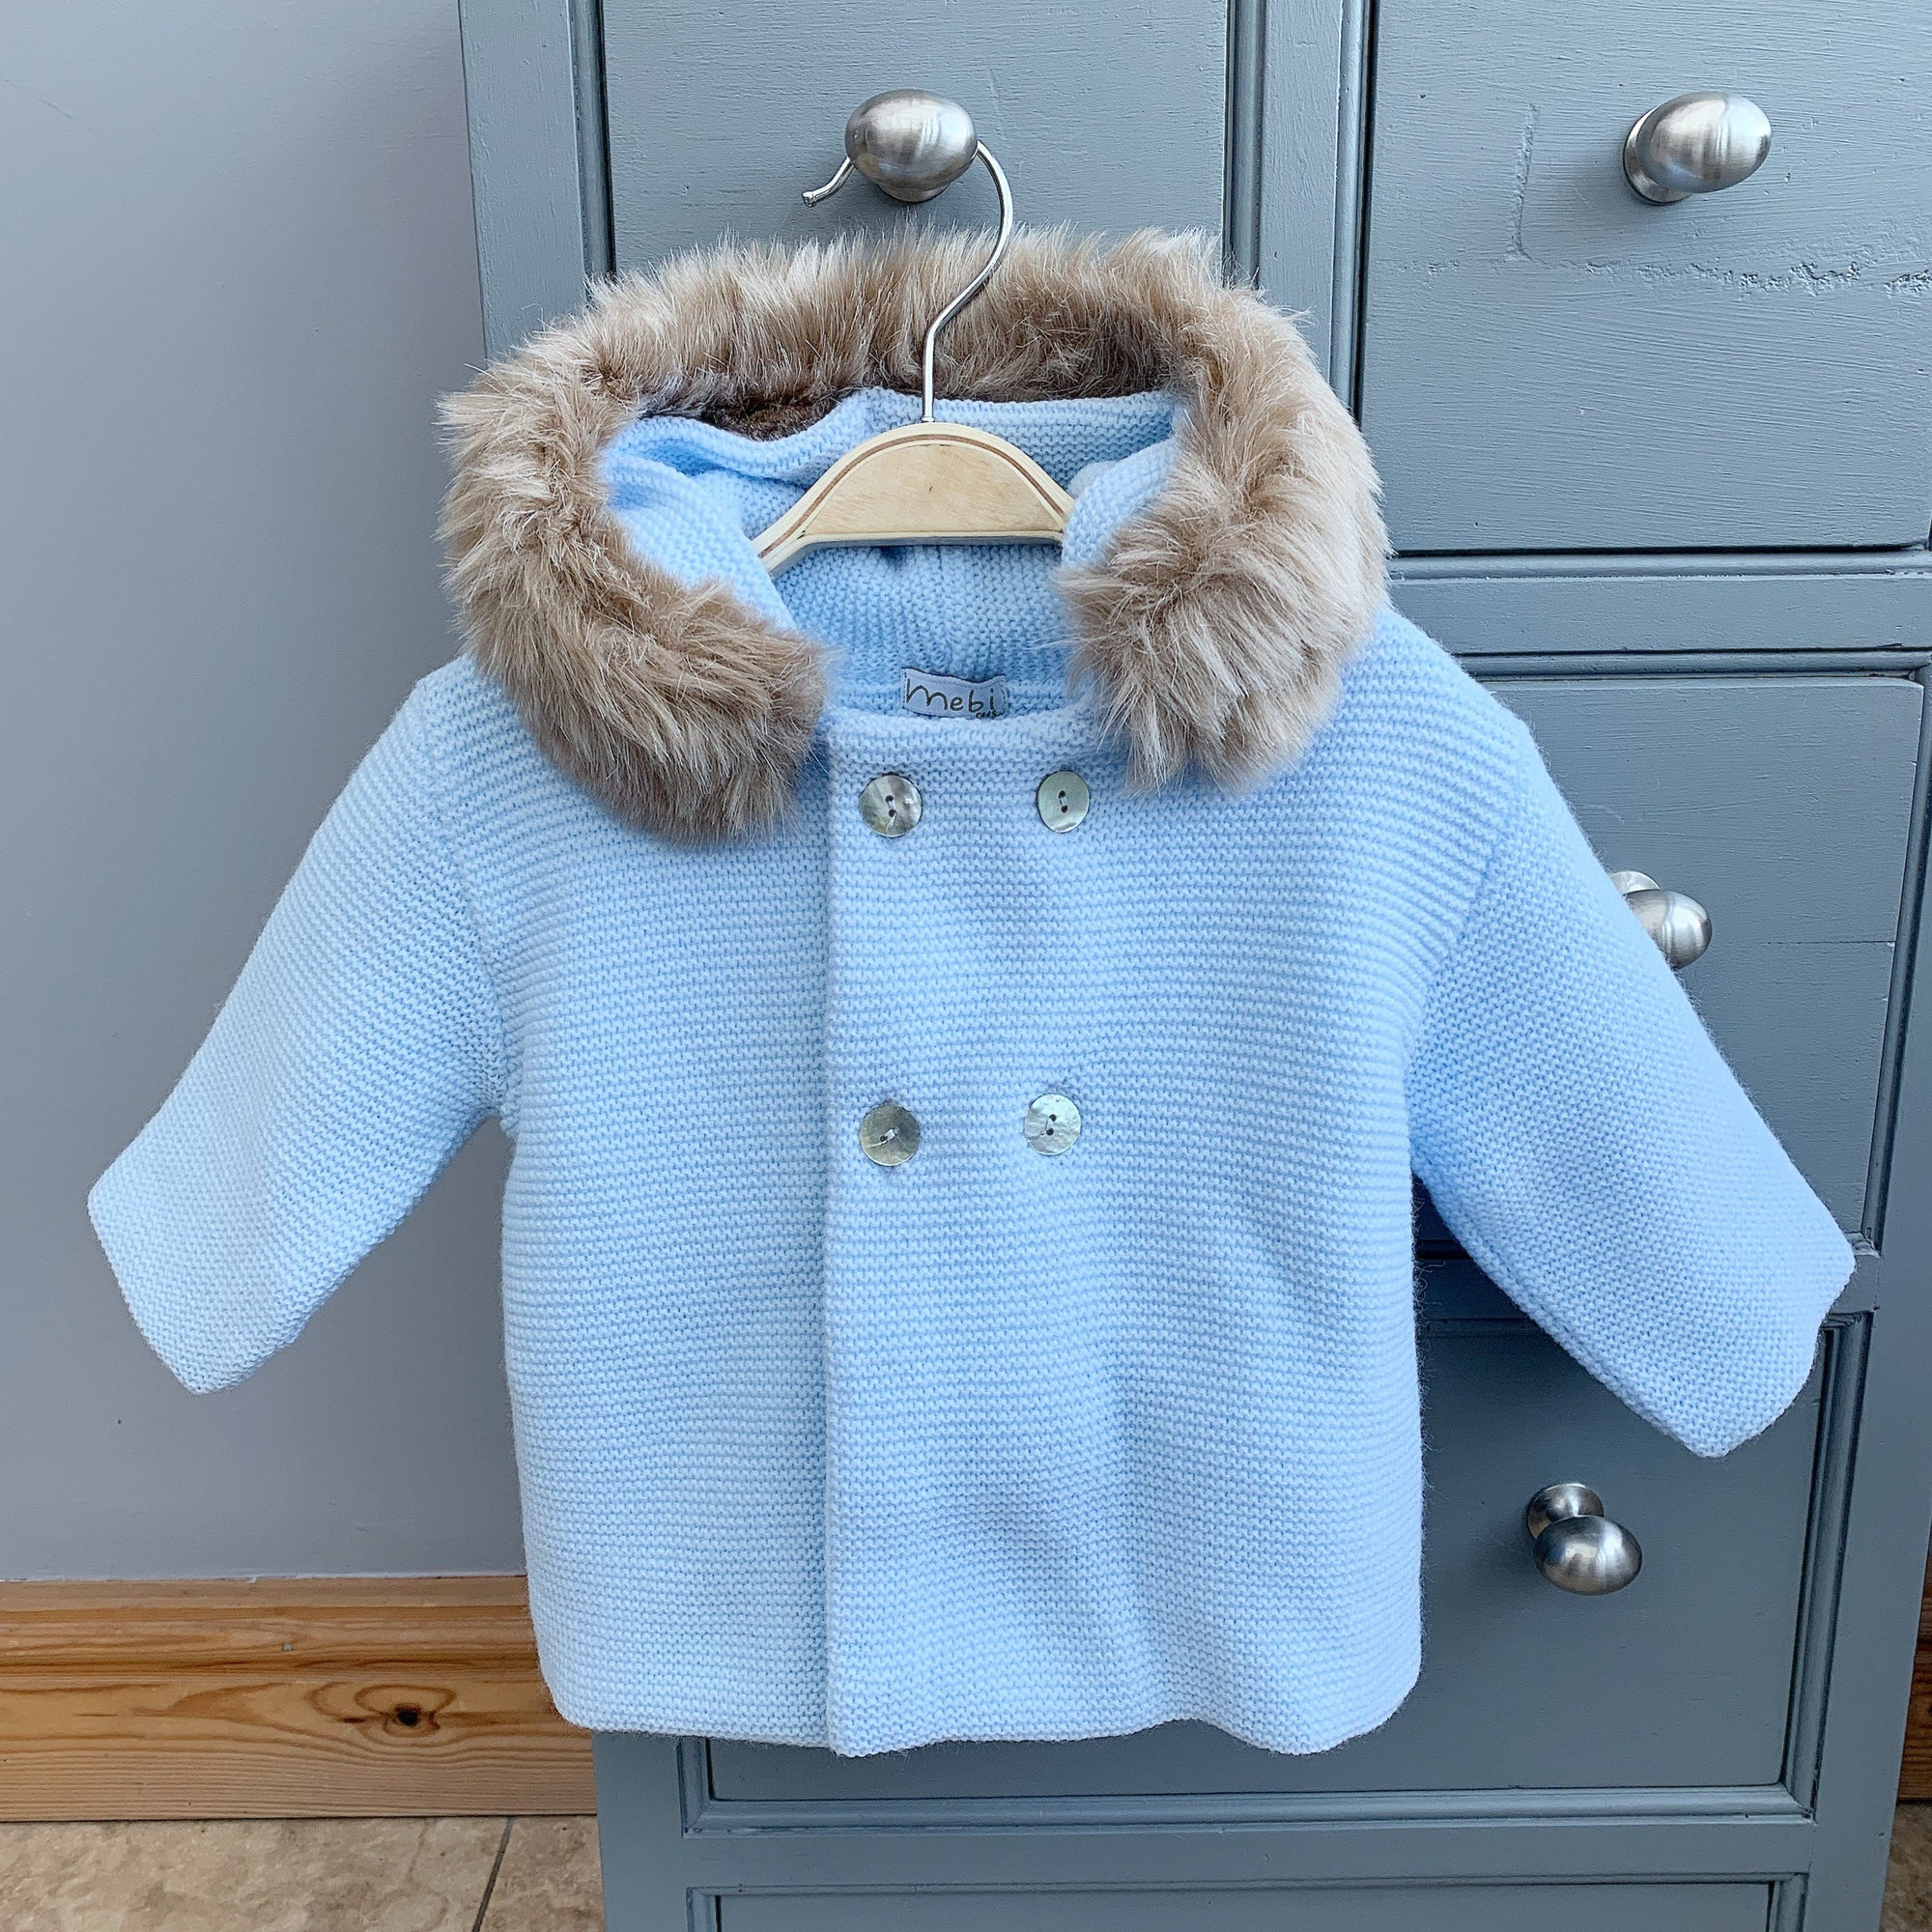 Mebi Light Blue Knitted Jacket with Faux Fur Trim | Millie and John